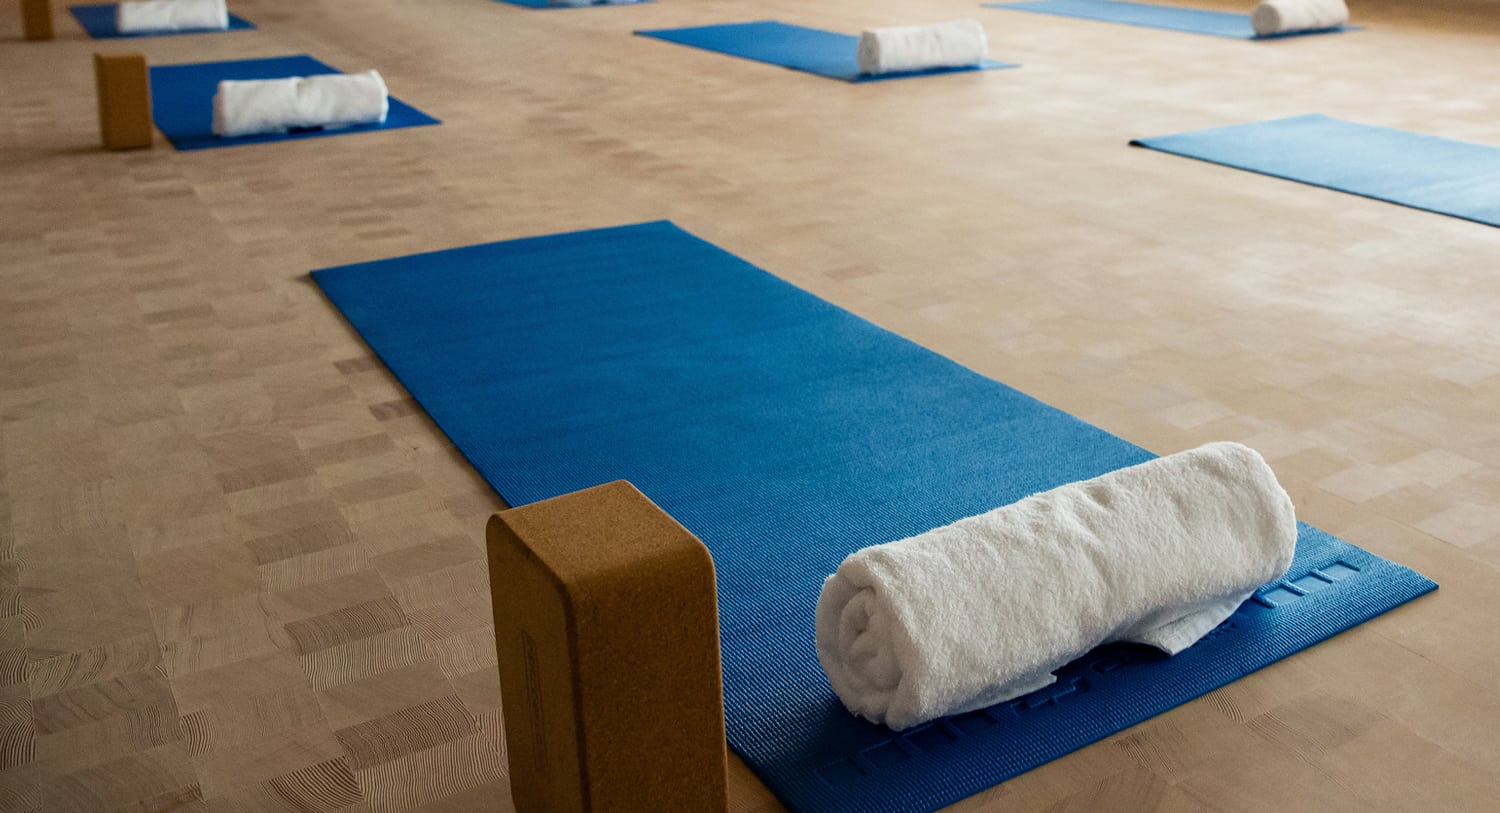 Yoga mats in Integrative Health and Wellbeing's multipurpose room